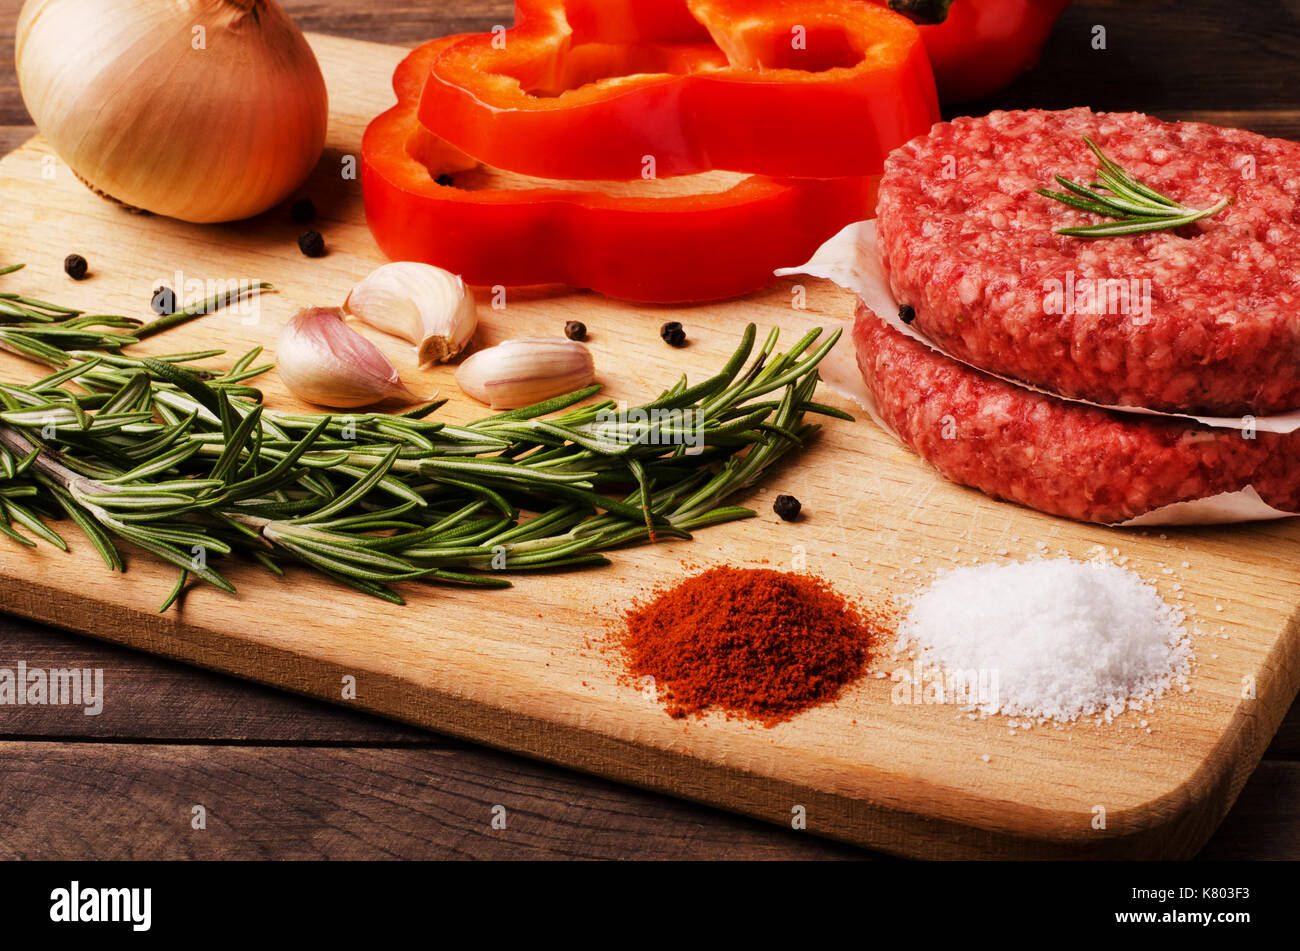 Raw ground beef burgers cutlets with red onion, garlic, olive and red pepper oil to prepare for frying in oven, close-up - Stock Image